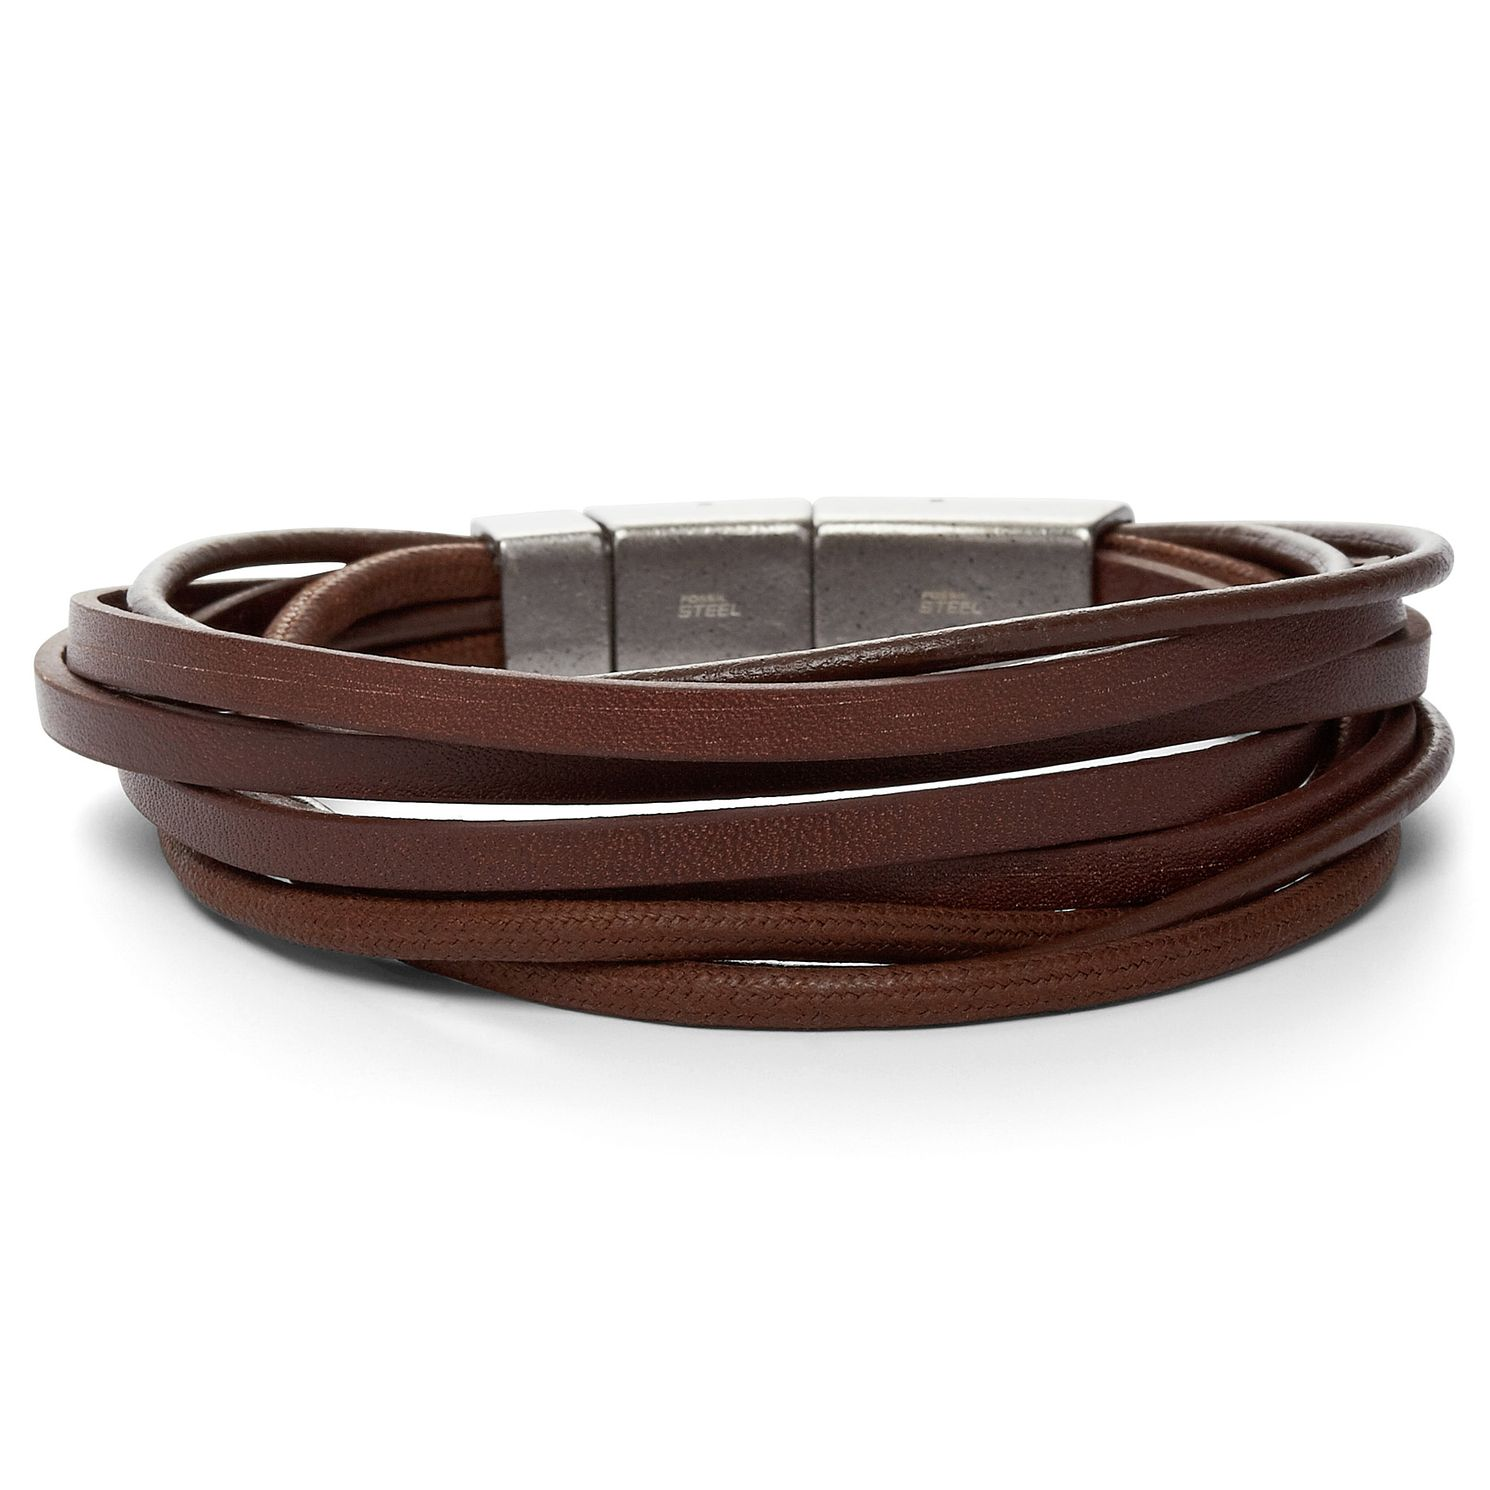 Fossil Men's Stainless Steel Brown Leather Bracelet Watch - Product number 4842863